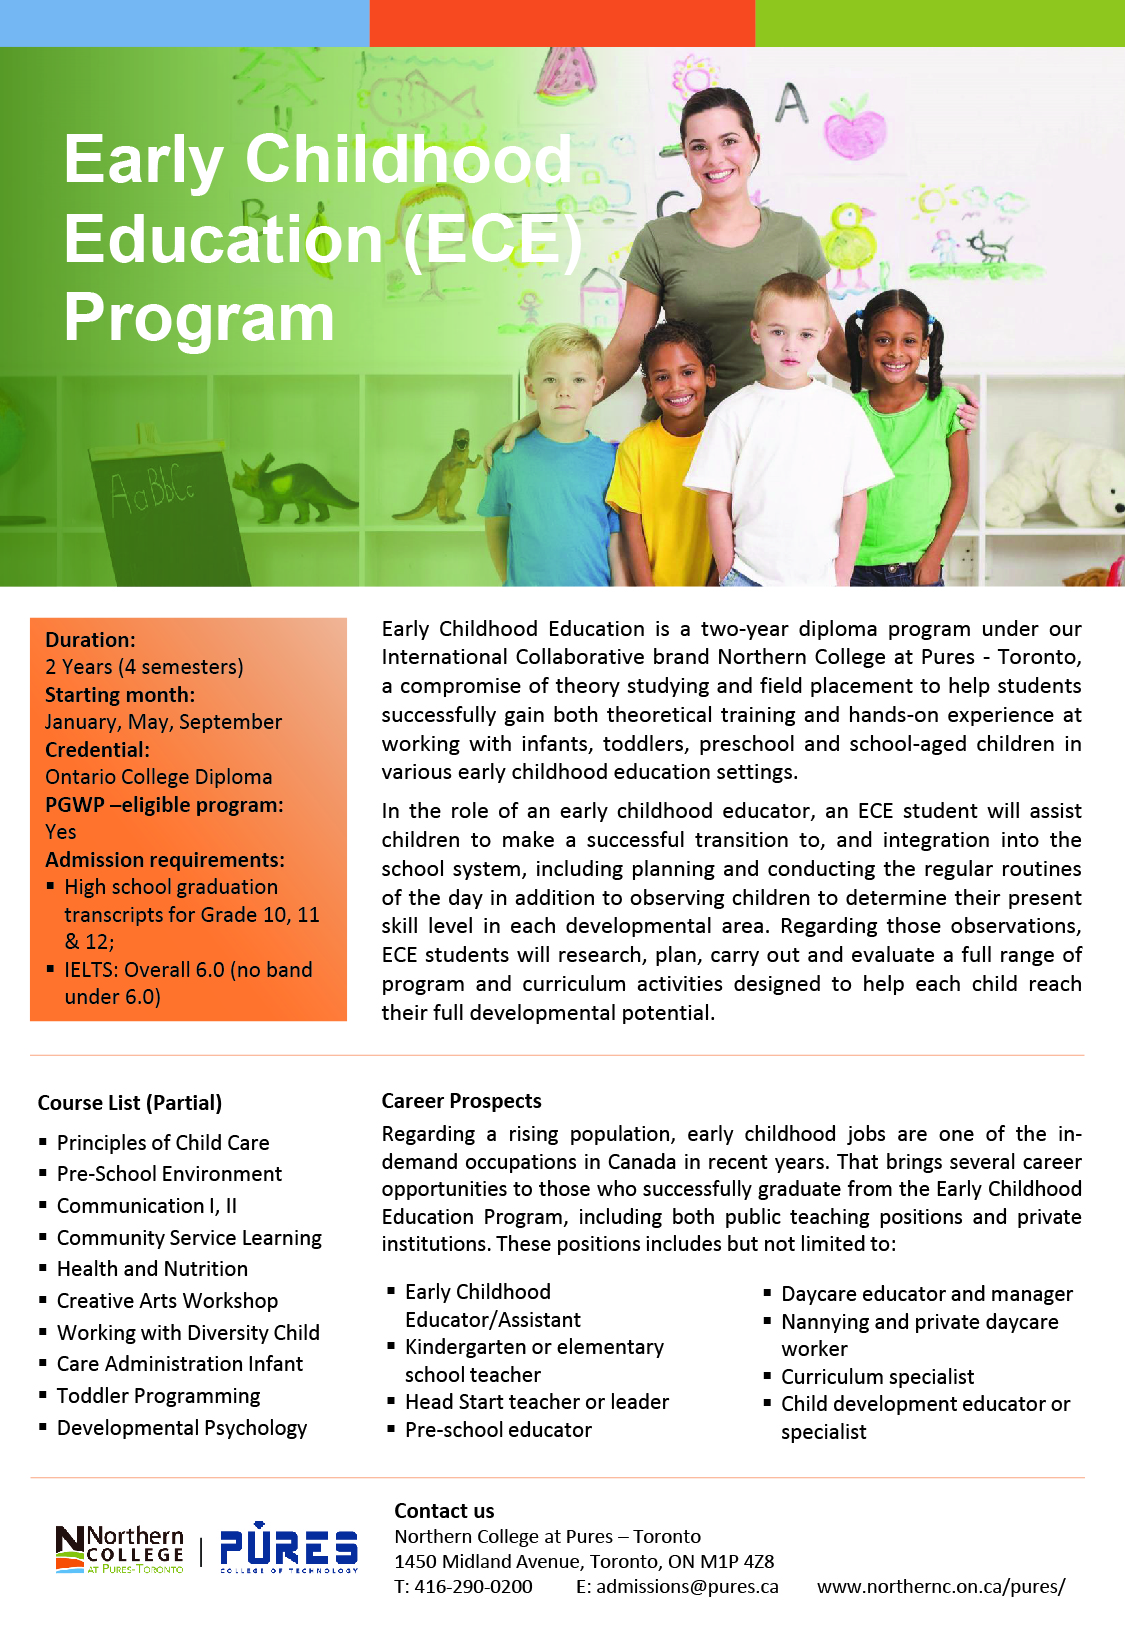 Northern-College-Toronto-Pures-Campus-Program-Flyers-Updated-July-2020_Early Childhood Education